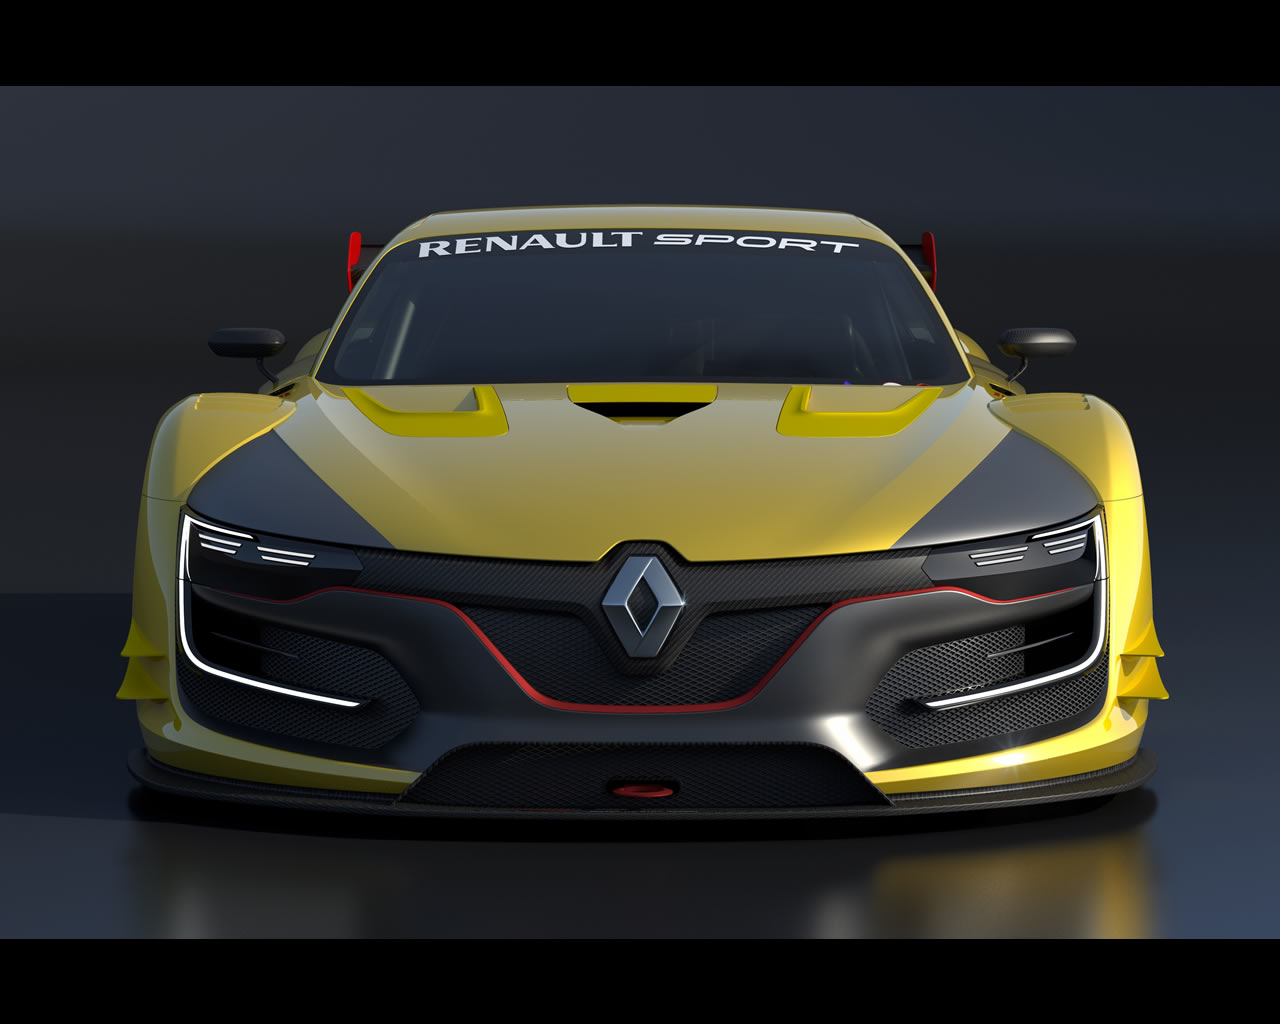 renault sport r s 01 racing car 2015. Black Bedroom Furniture Sets. Home Design Ideas